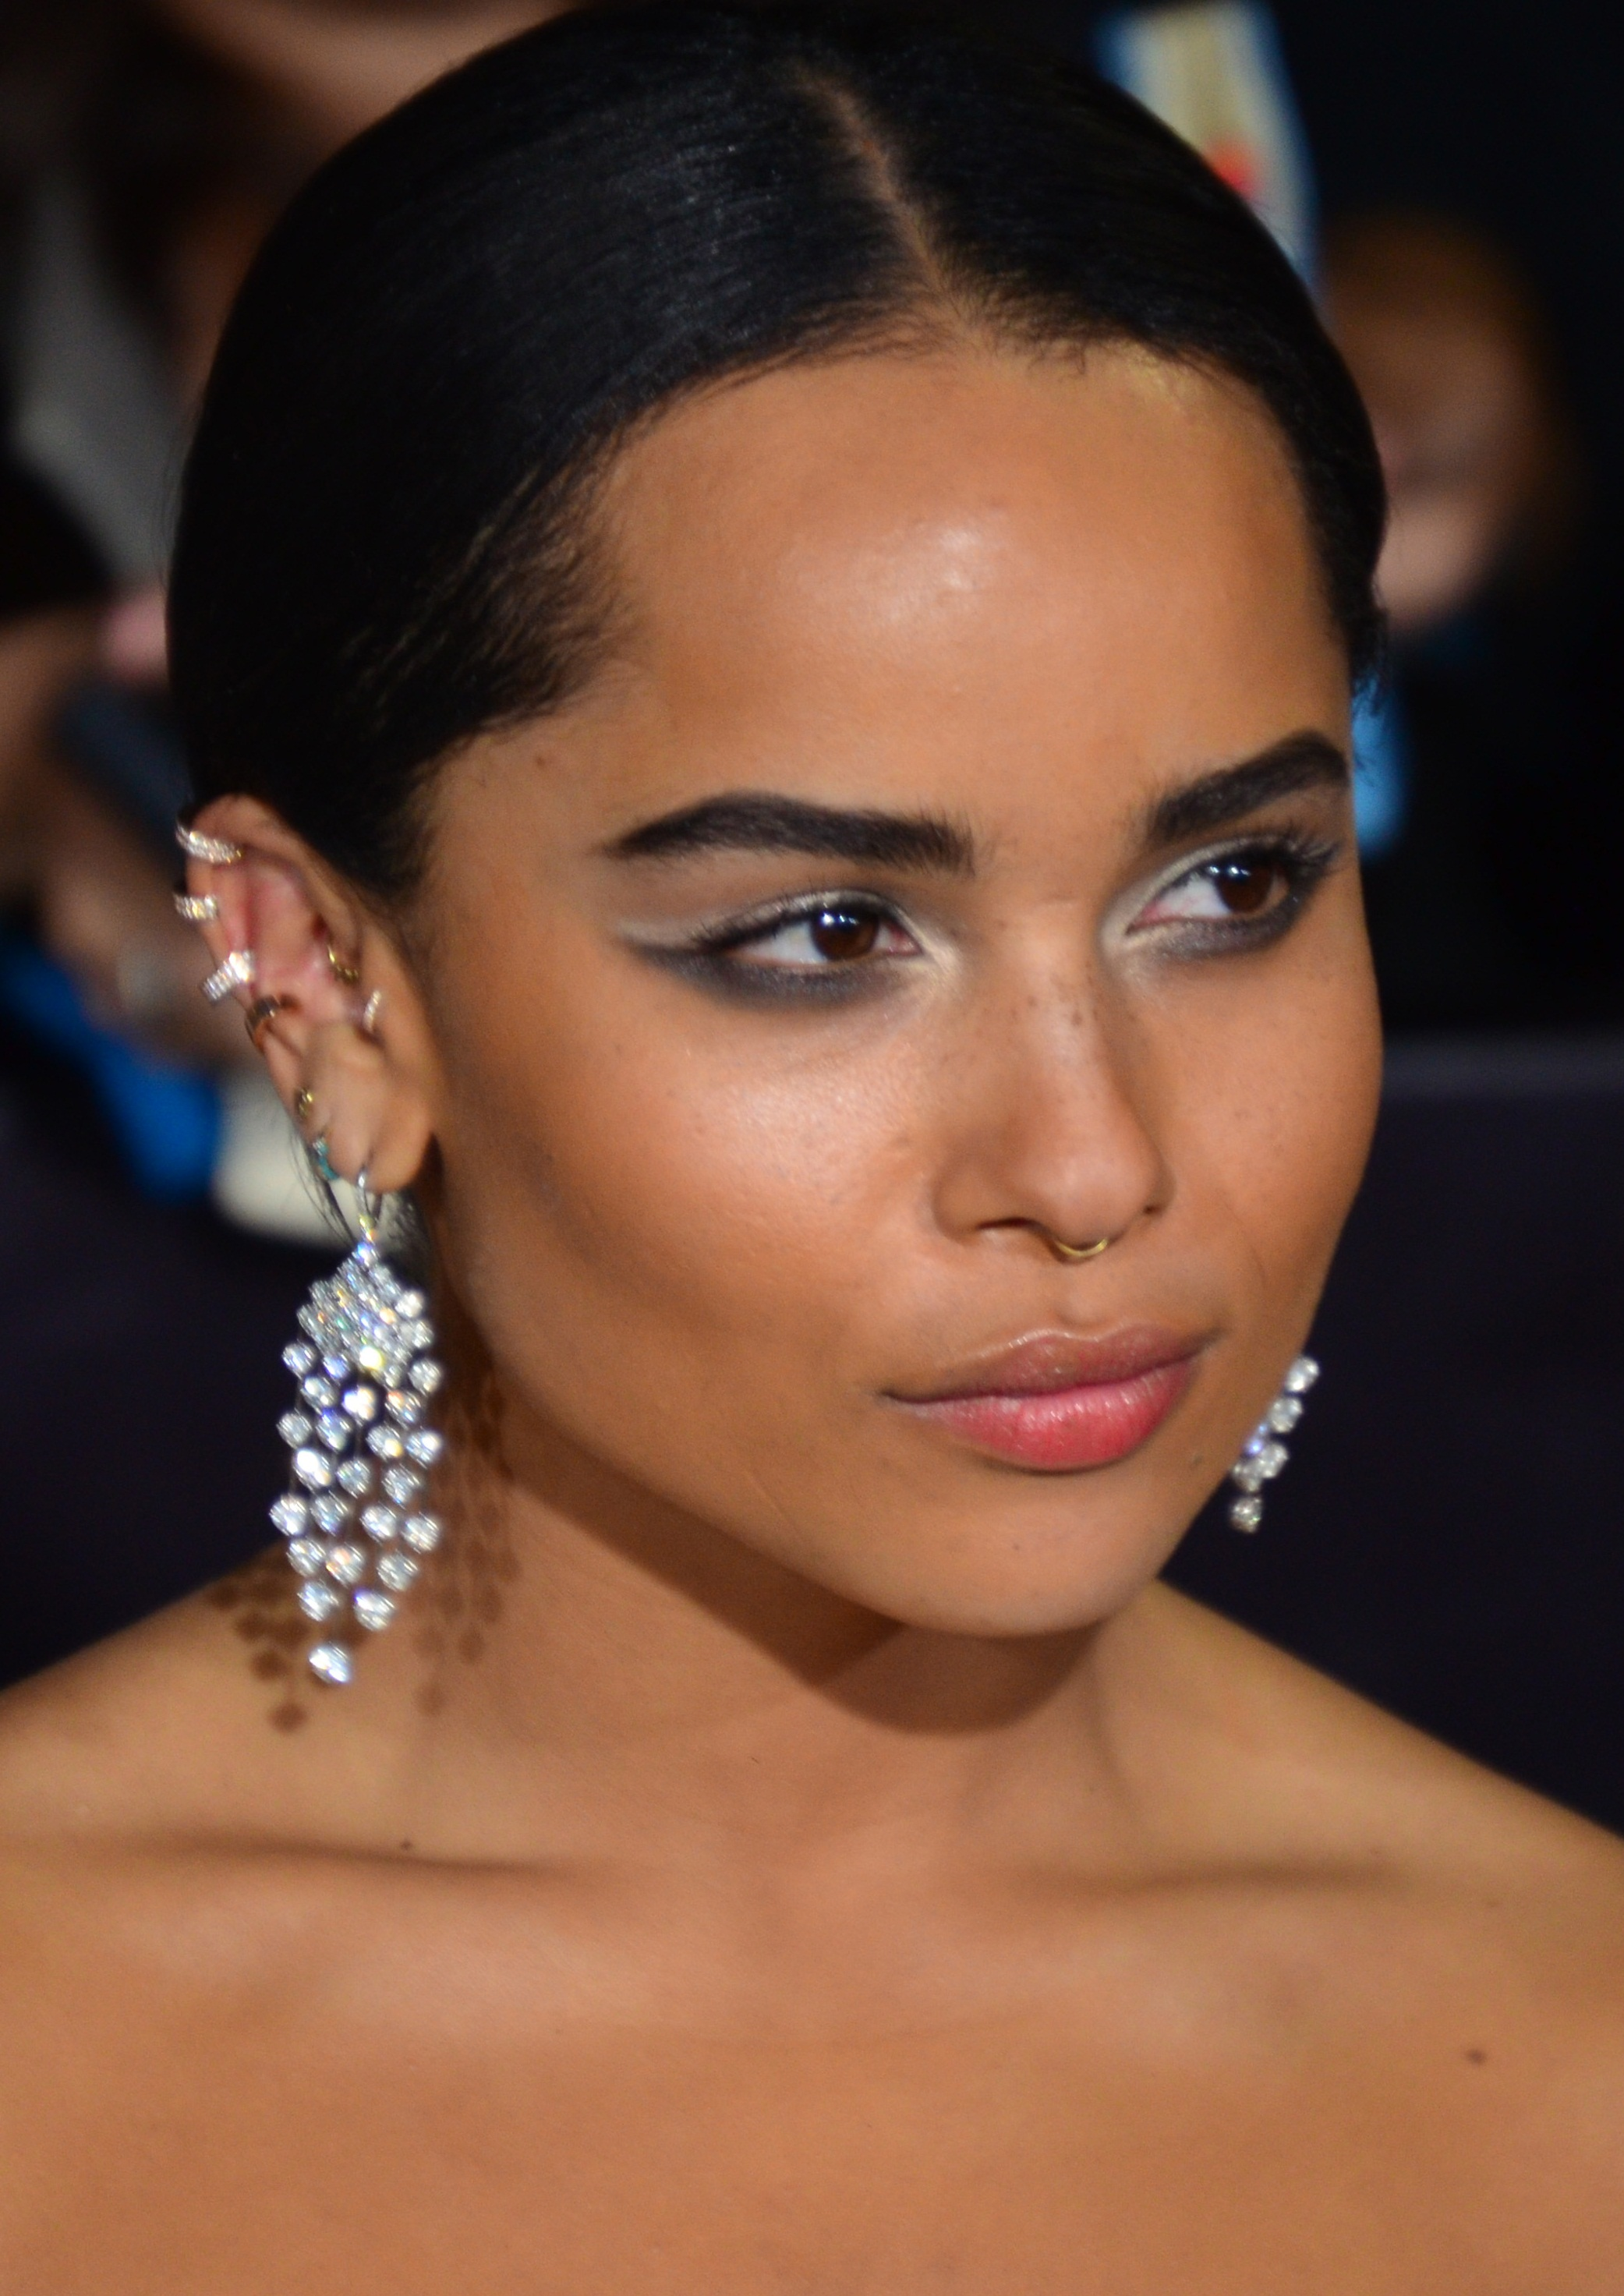 Zoe Kravitz Simple English Wikipedia The Free Encyclopedia